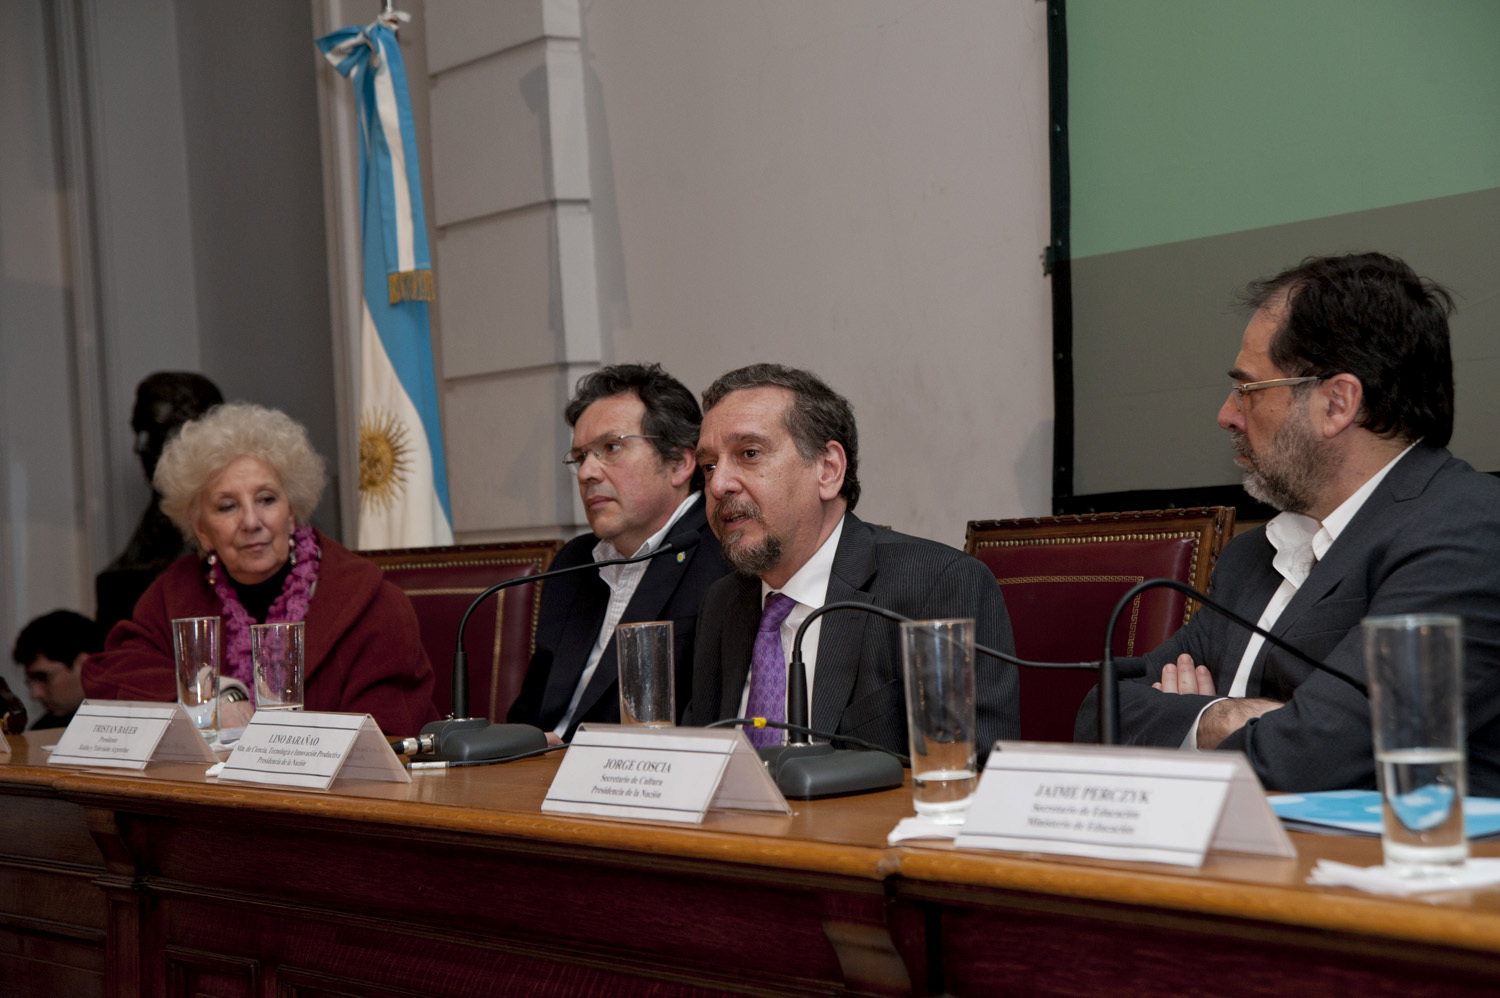 Minister Lino Barañao participated in the Argentina Business & Investment Forum